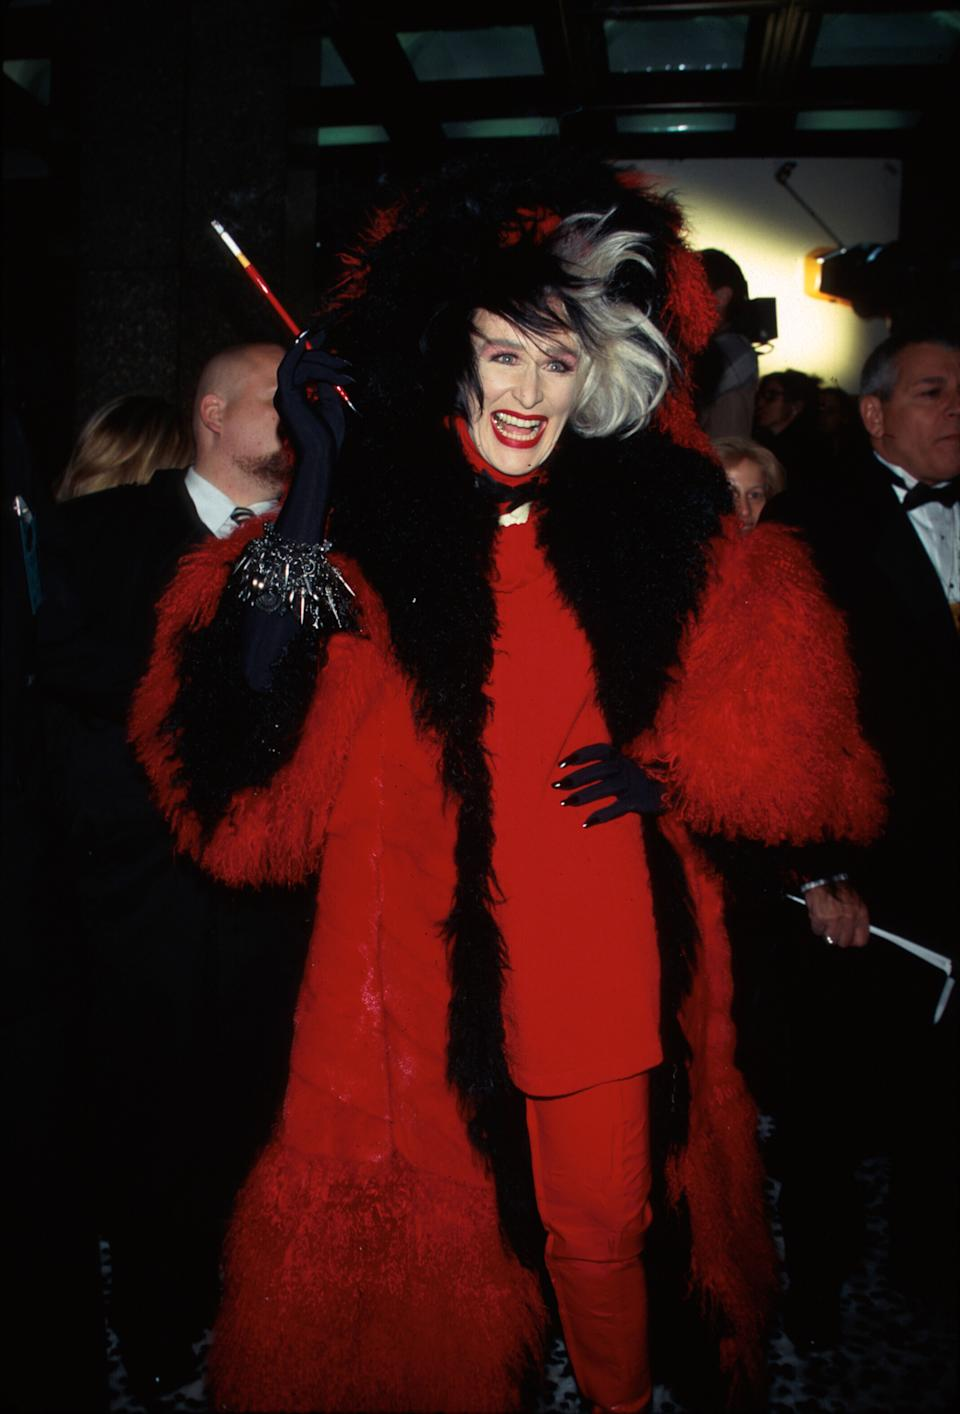 Actress Glenn Close, dressed as character Cruella DeVille, at premiere of her film 101 Dalmatians.  (Photo by Dave Allocca/DMI/The LIFE Picture Collection via Getty Images)